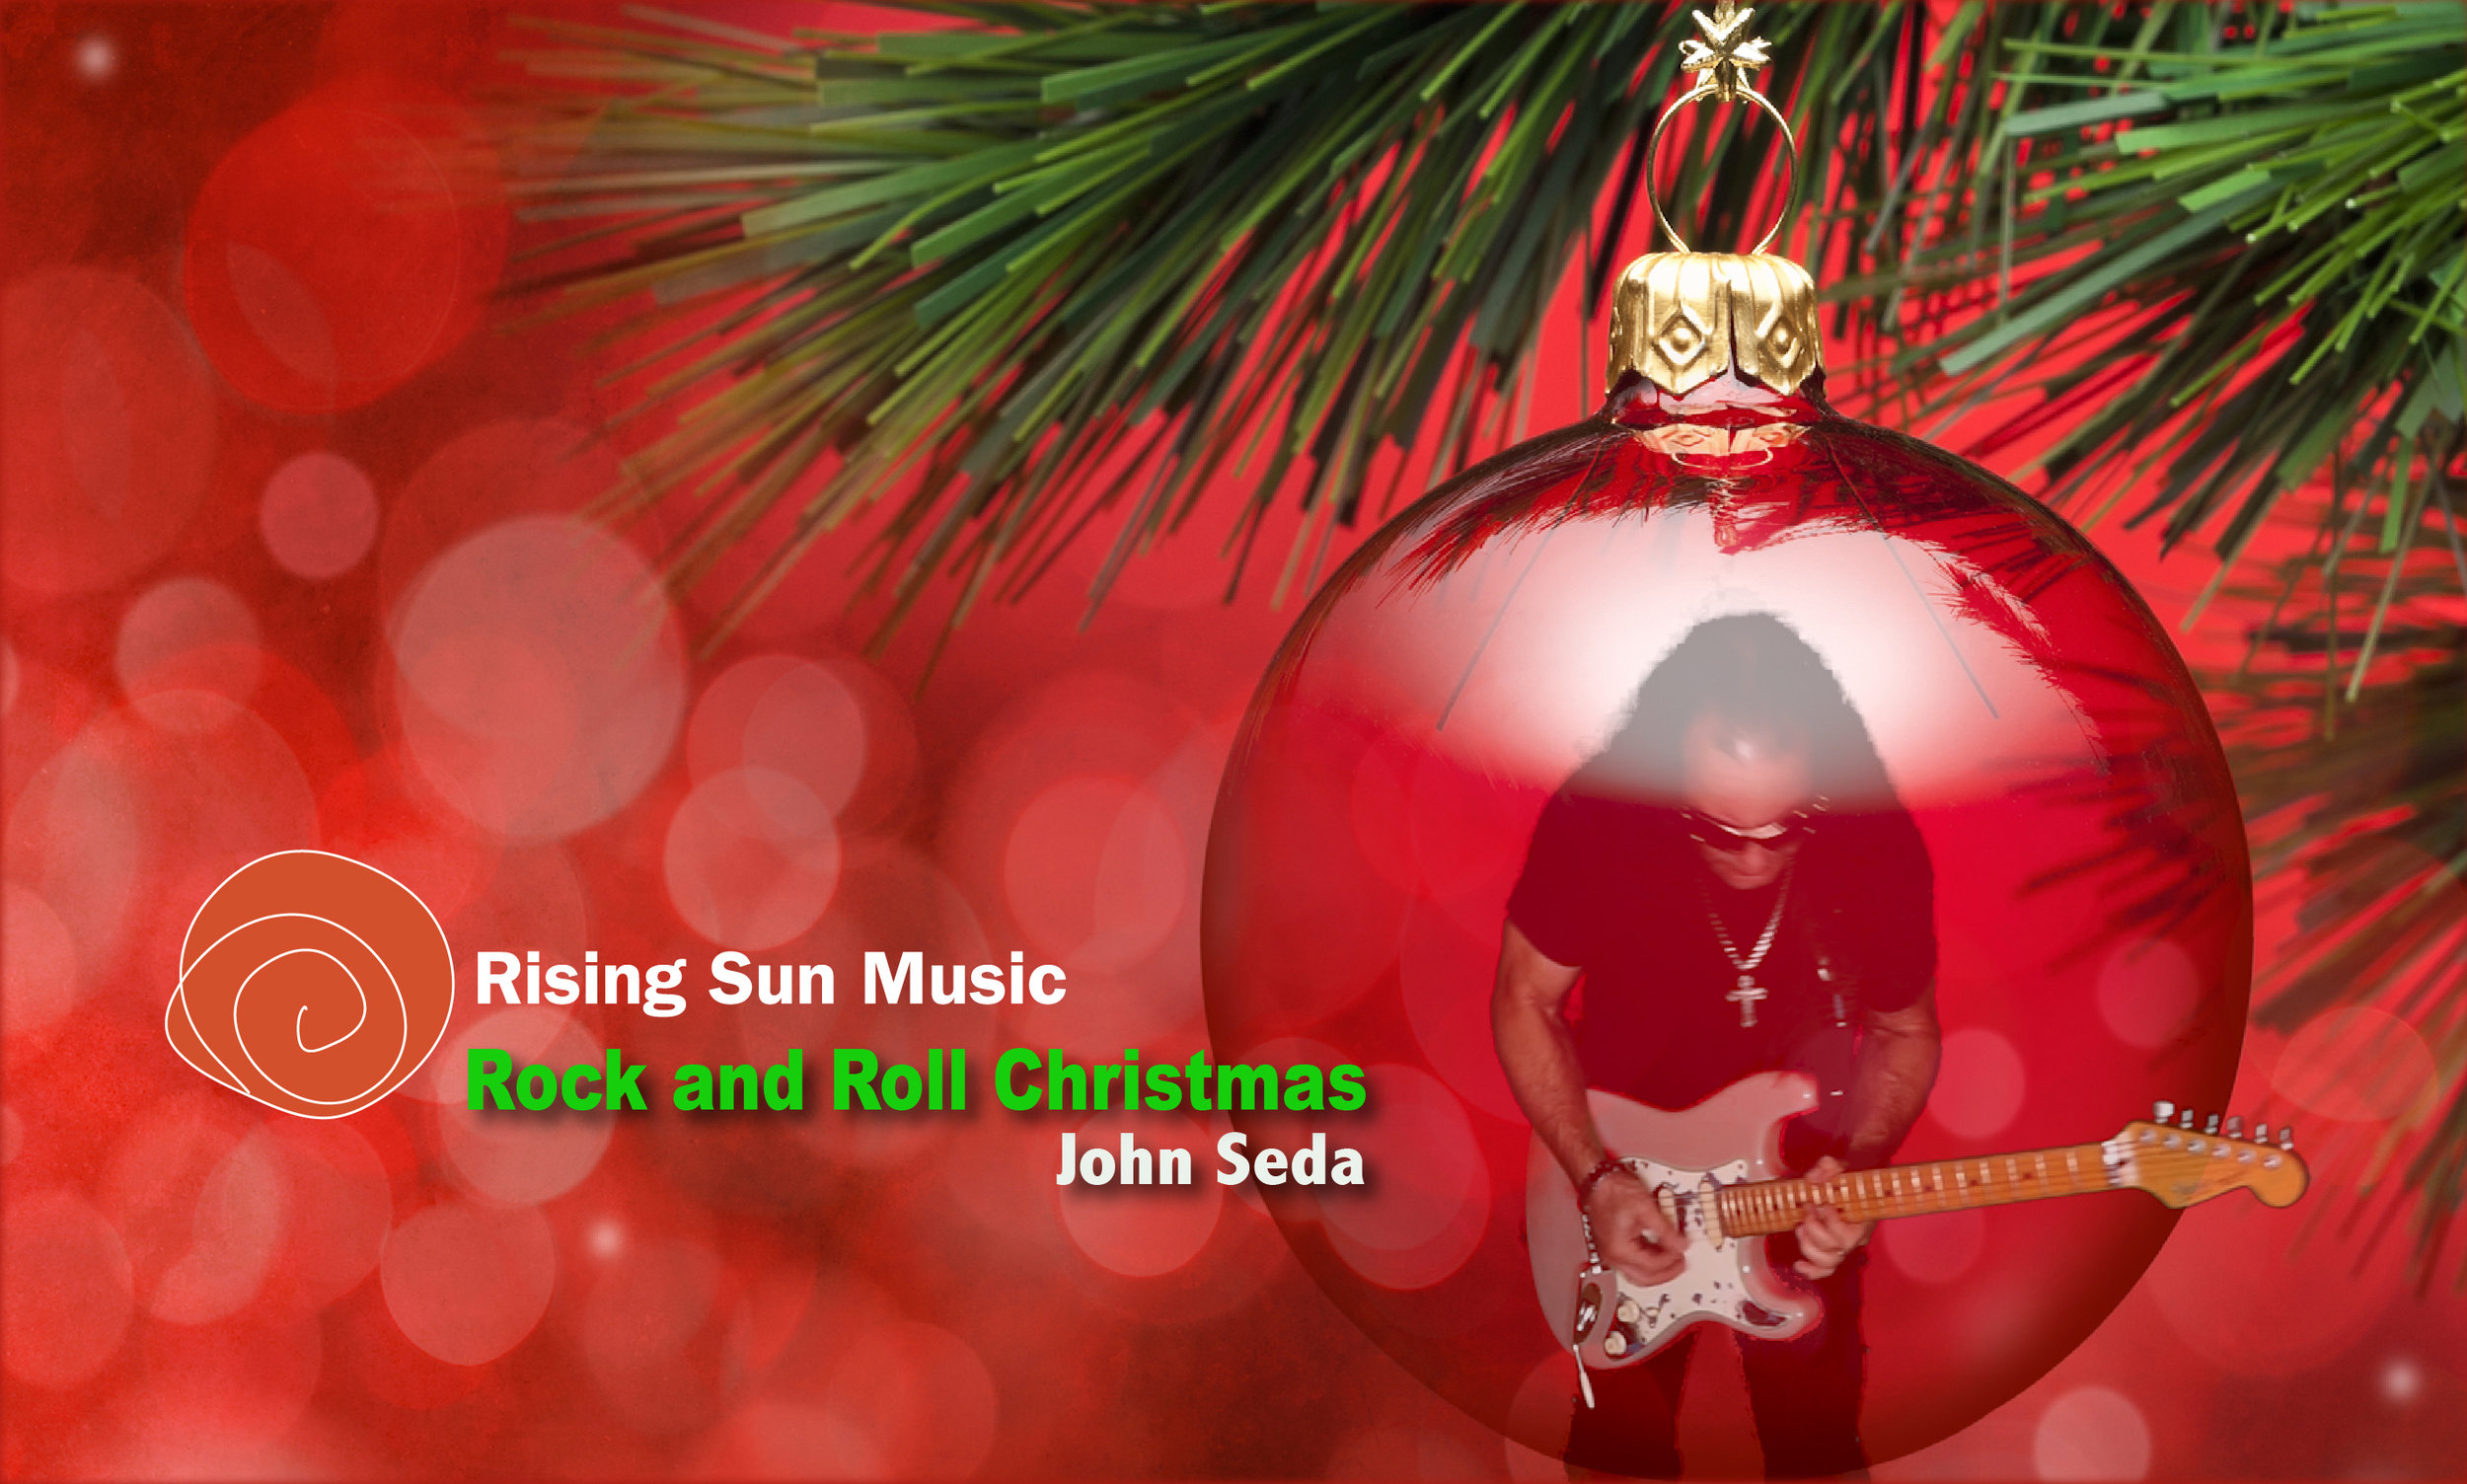 Rock and Roll Christmas Produced by John Seda